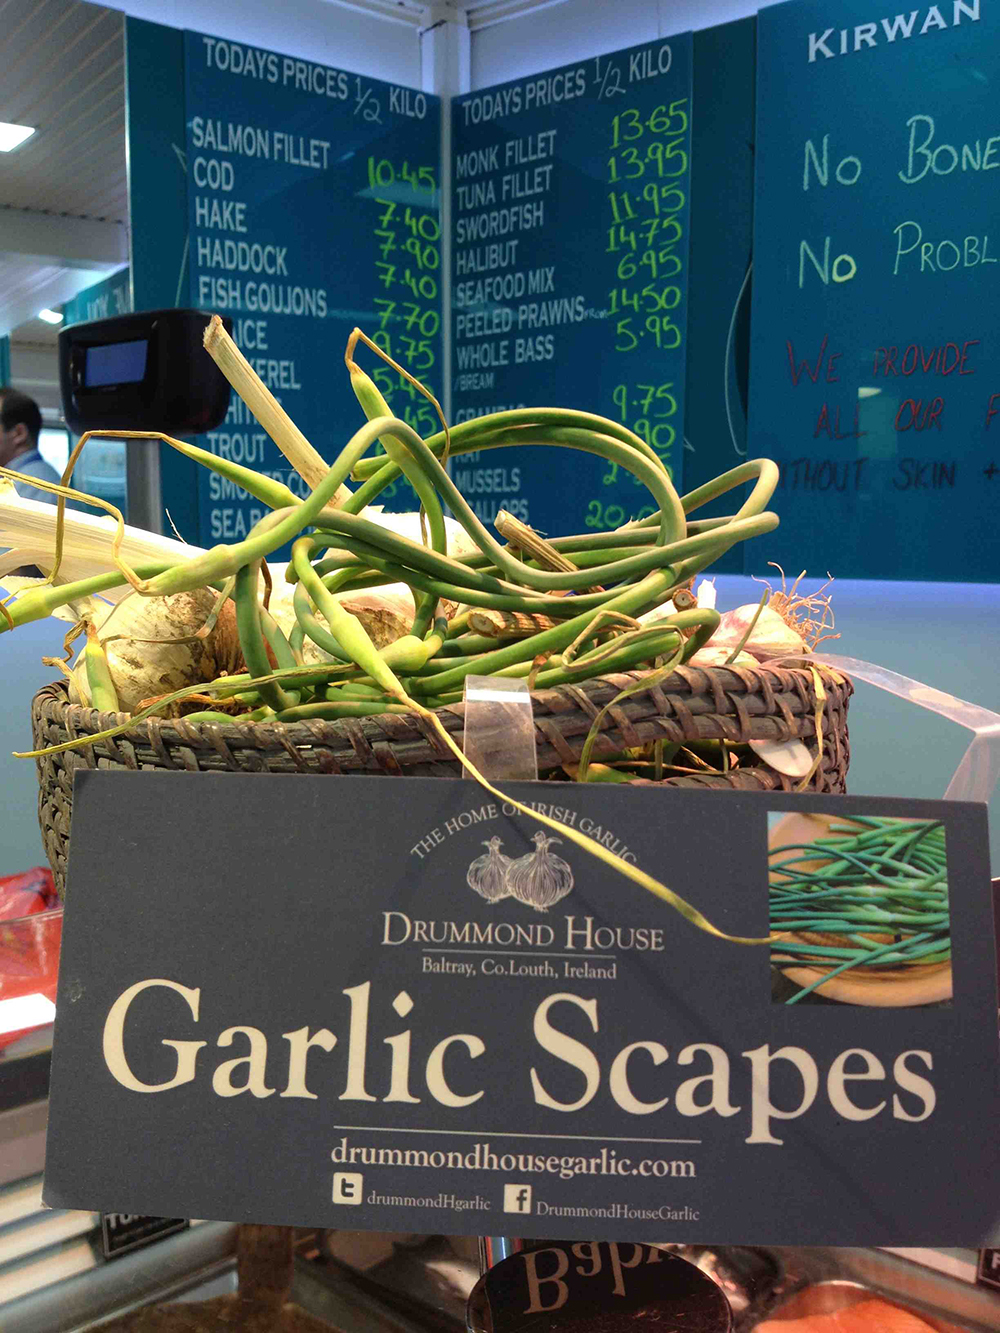 Drummond House Garlic Scapes for sale